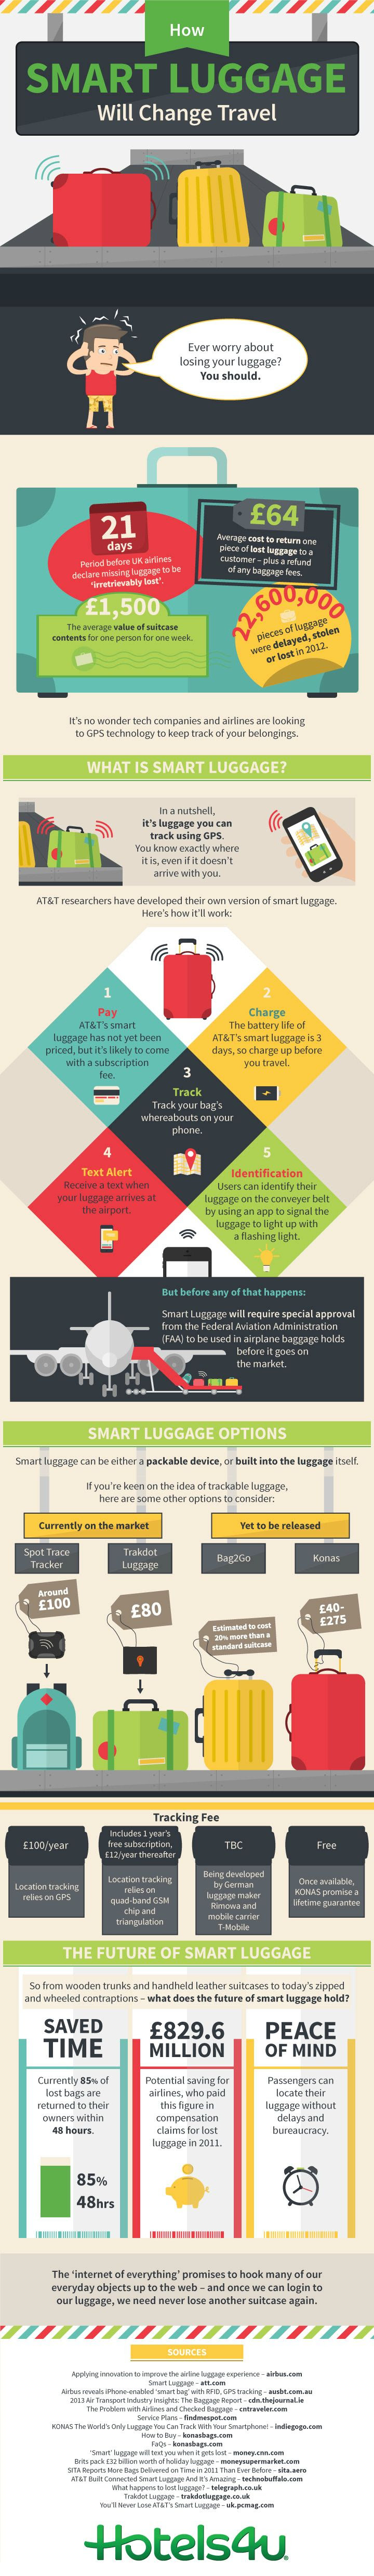 Infographic: How Smart Luggage Will Change Travel